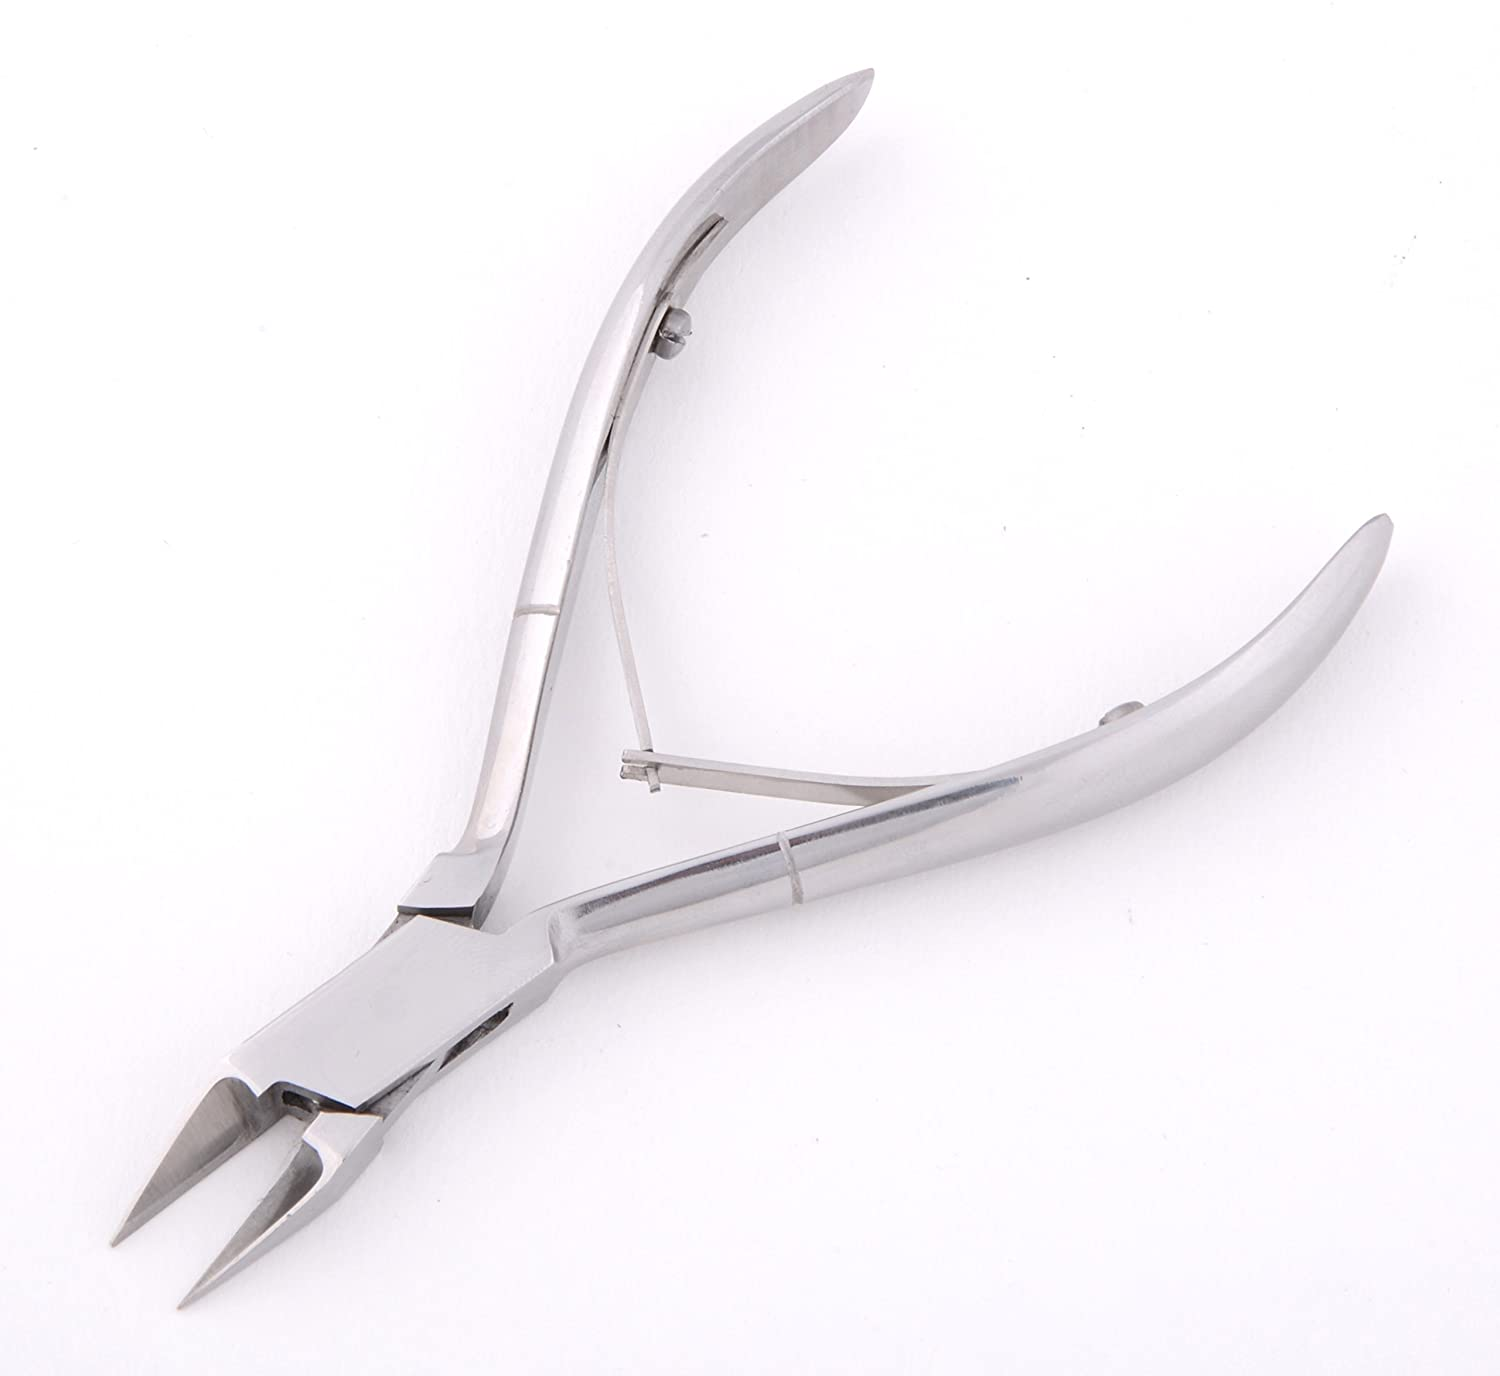 CANDURE® - Toe INGROWN Nail Clippers, Nail Nippers Cutter. 4.75'' Solid Stainless Steel. Podiatry Chiropody Instruments. CE Approved